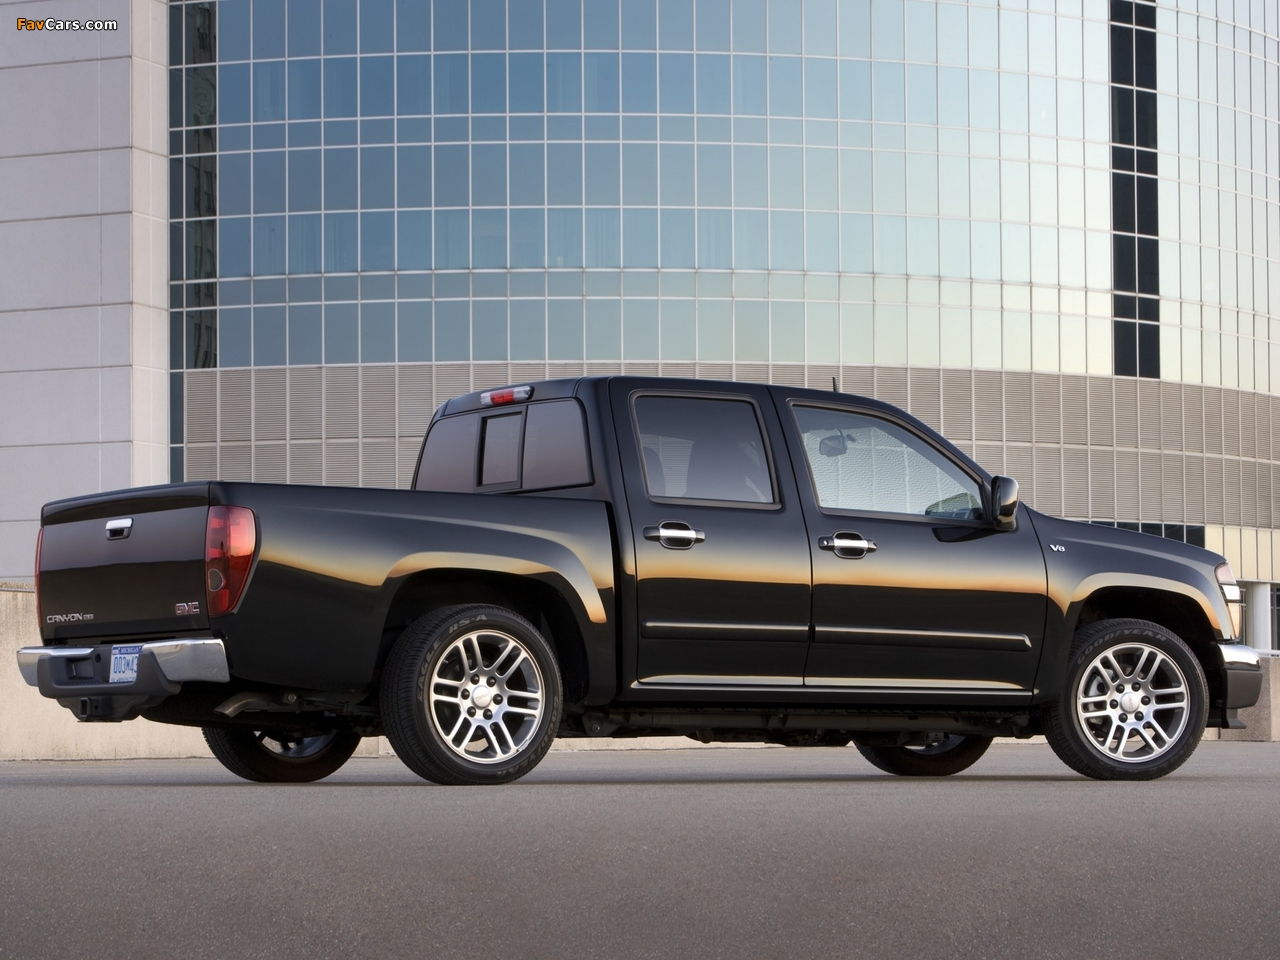 GMC Canyon Crew Cab Sport Suspension Package 2006 photos (1280 x 960)